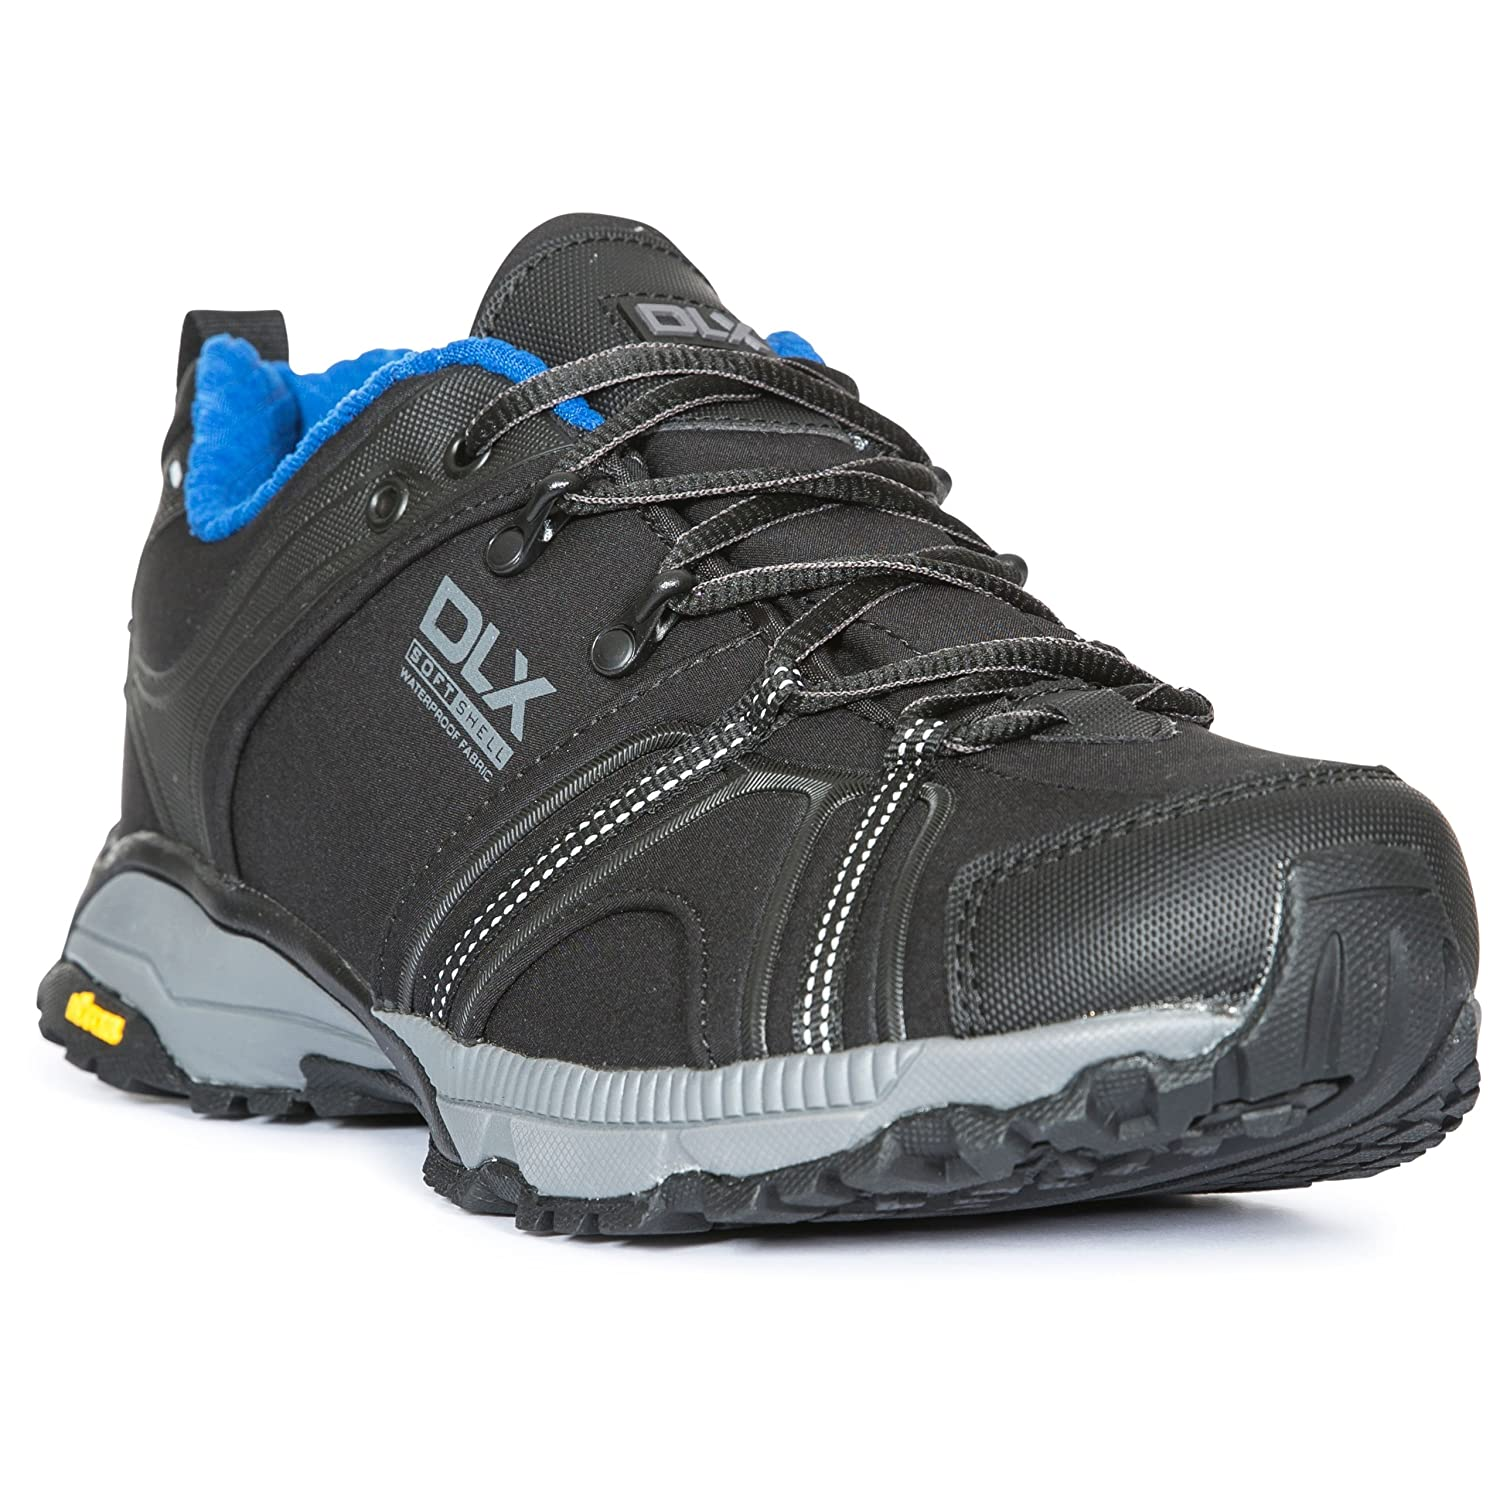 Keyboard Mens Walking Trail Running Sports Shoes Trainers